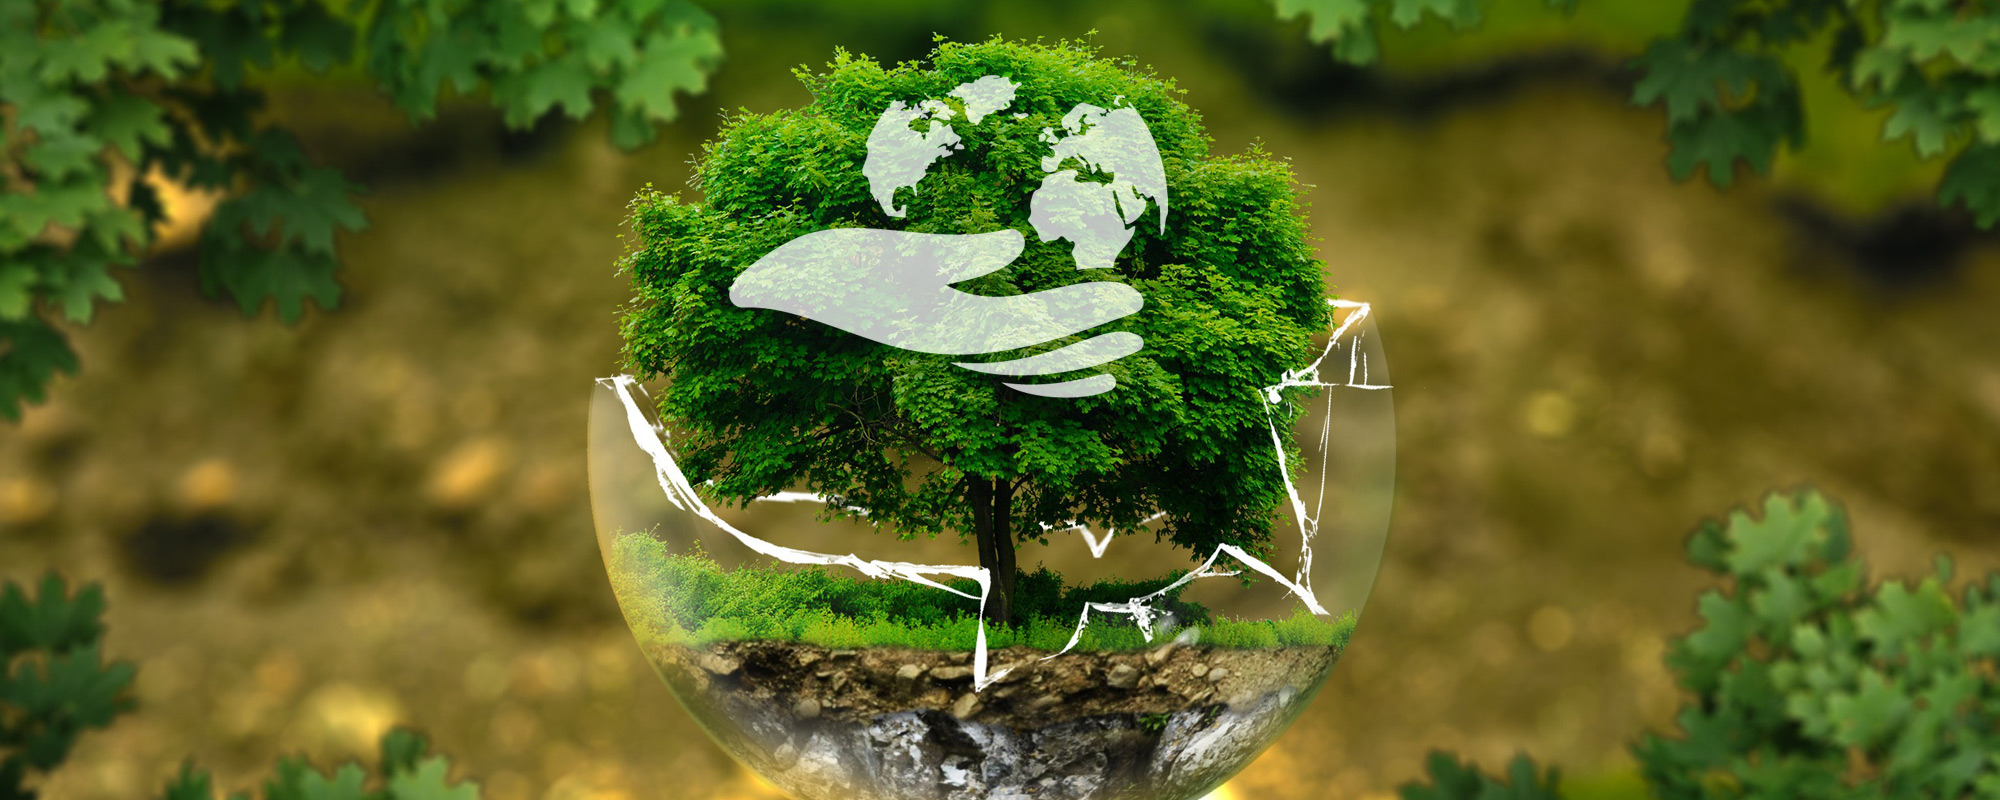 Current Environmental Issues 2019 - University of Bialystok - Poland